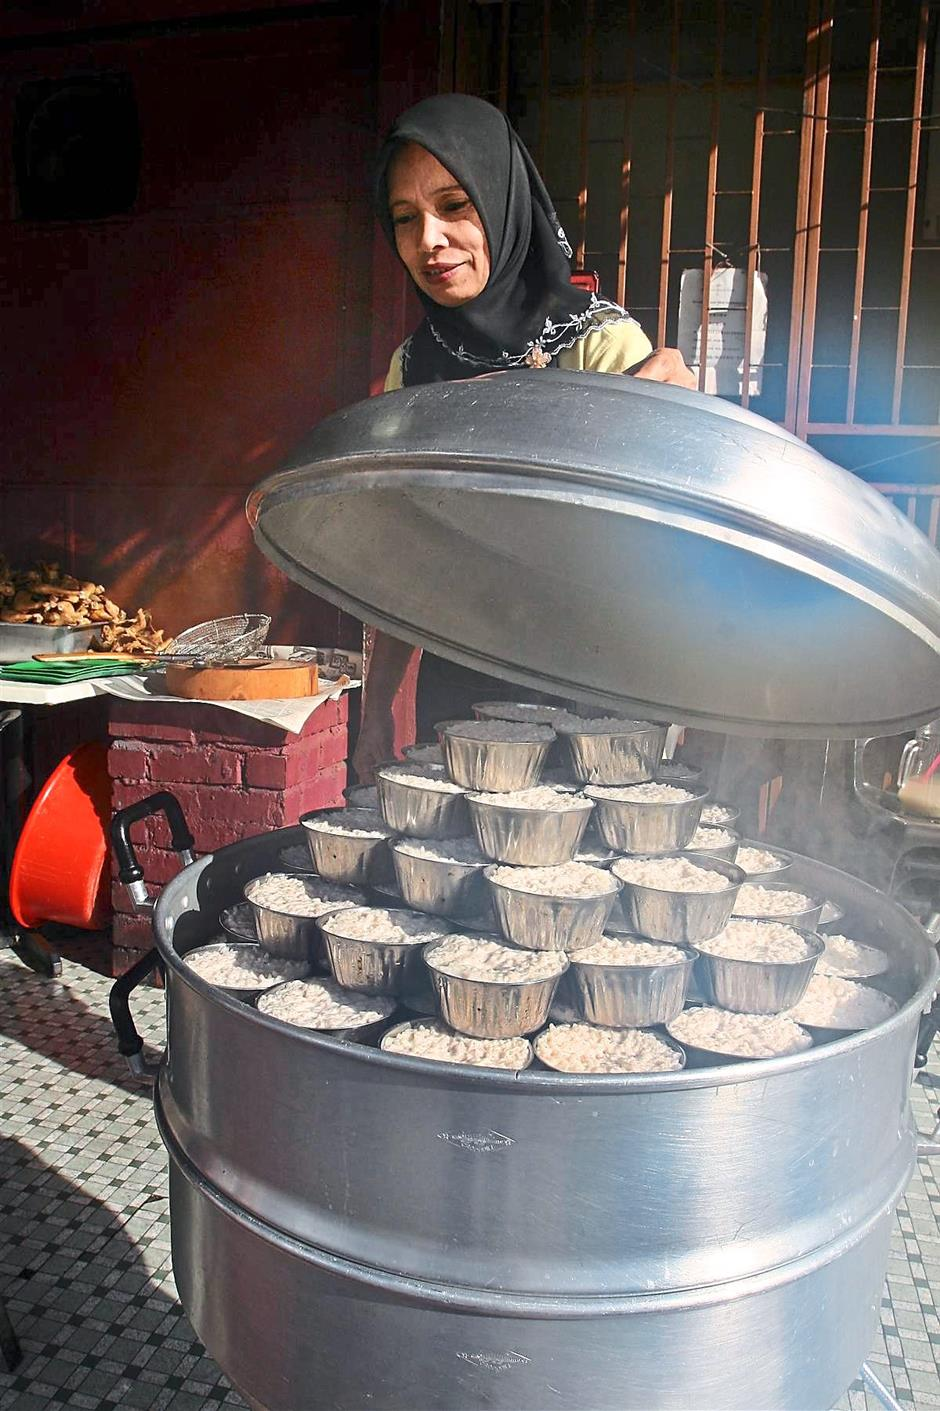 Piping hot: Rice being steamed inside a steam cooker at a shop in Ipoh. — filepic